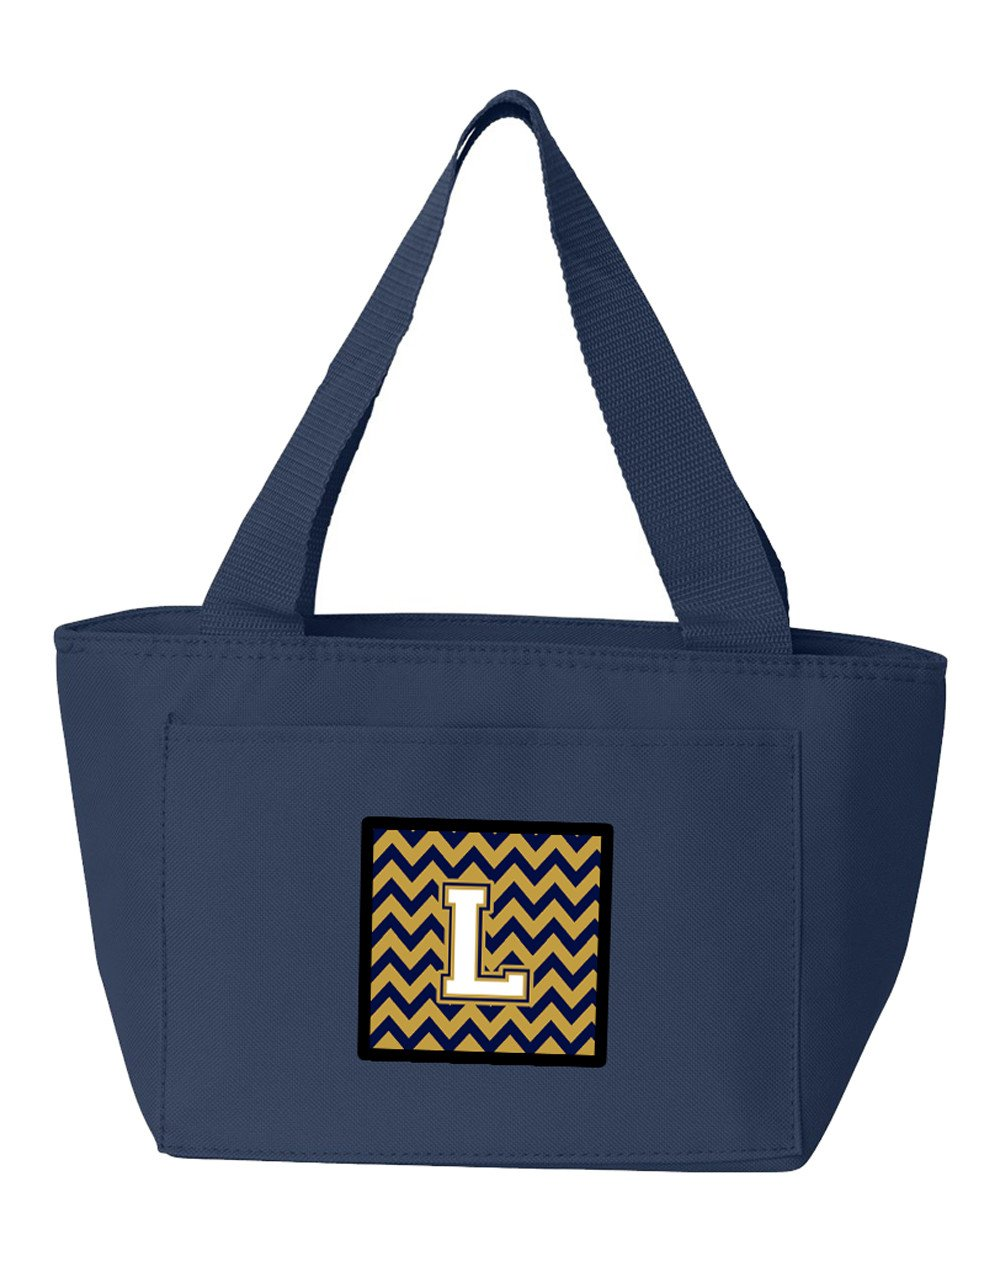 Letter L Chevron Navy Blue and Gold Lunch Bag CJ1057-LNA-8808 by Caroline's Treasures